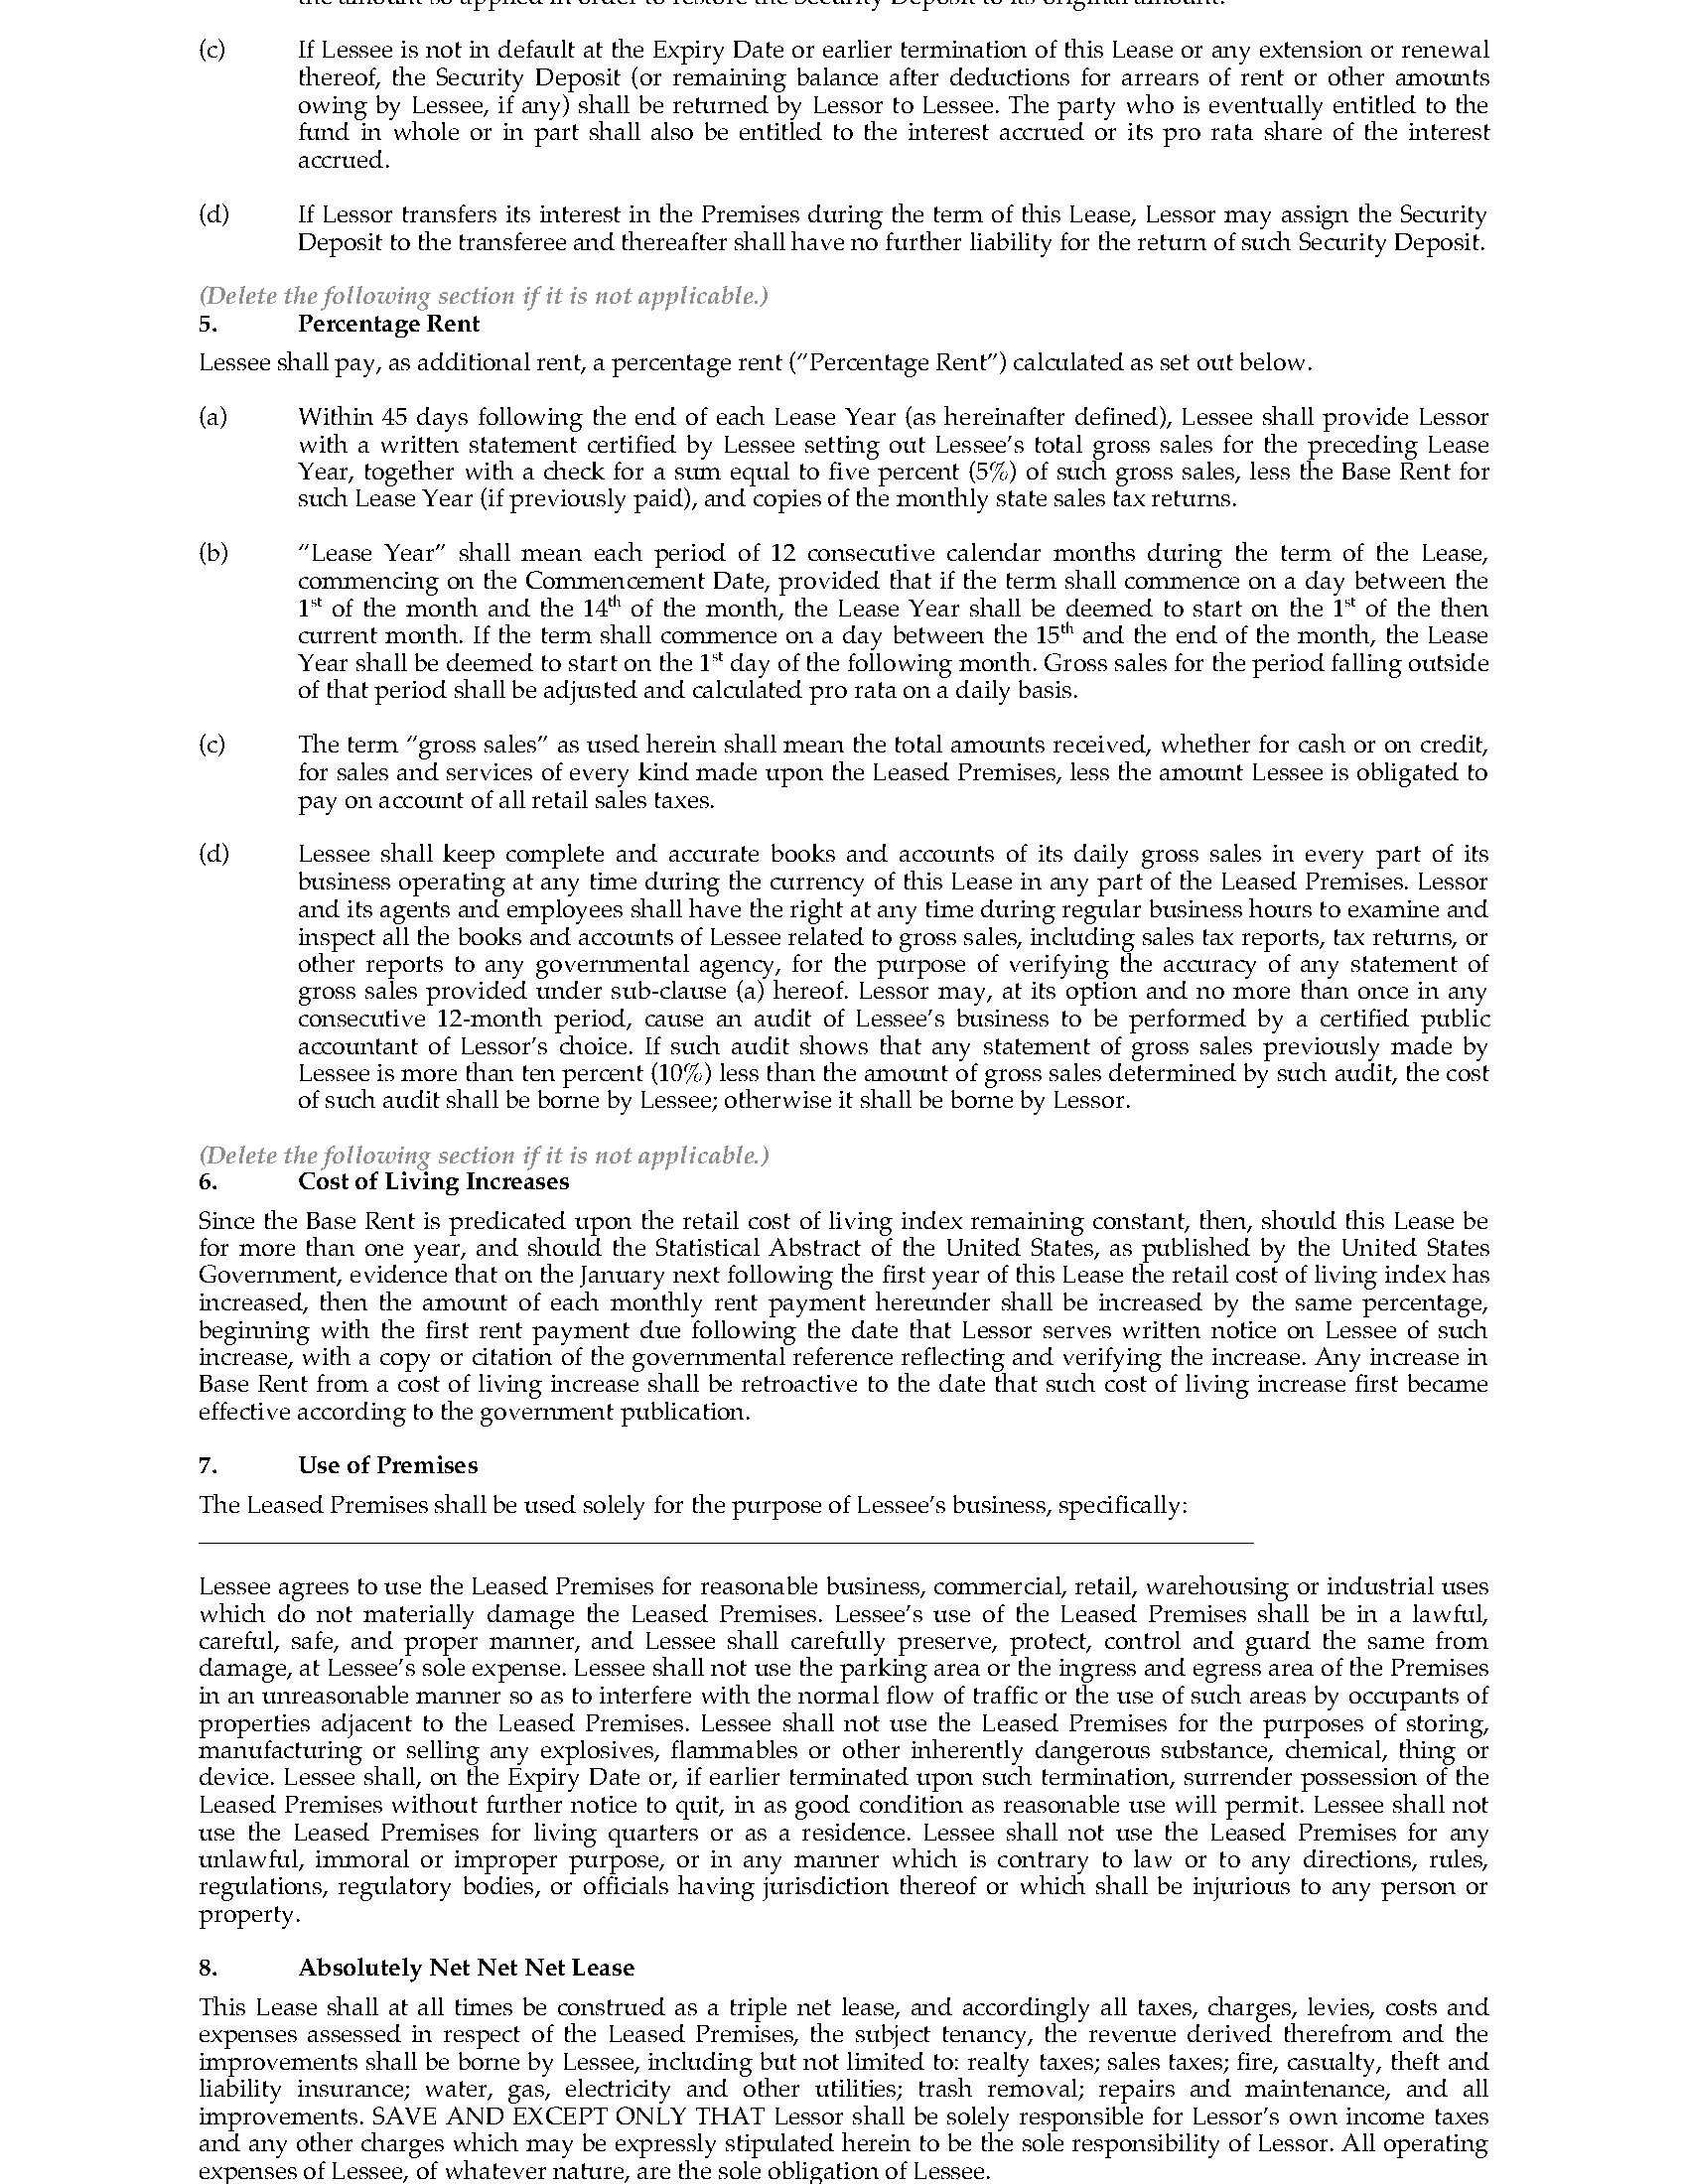 ... Picture Of Kentucky Commercial Triple Net Lease Agreement ...